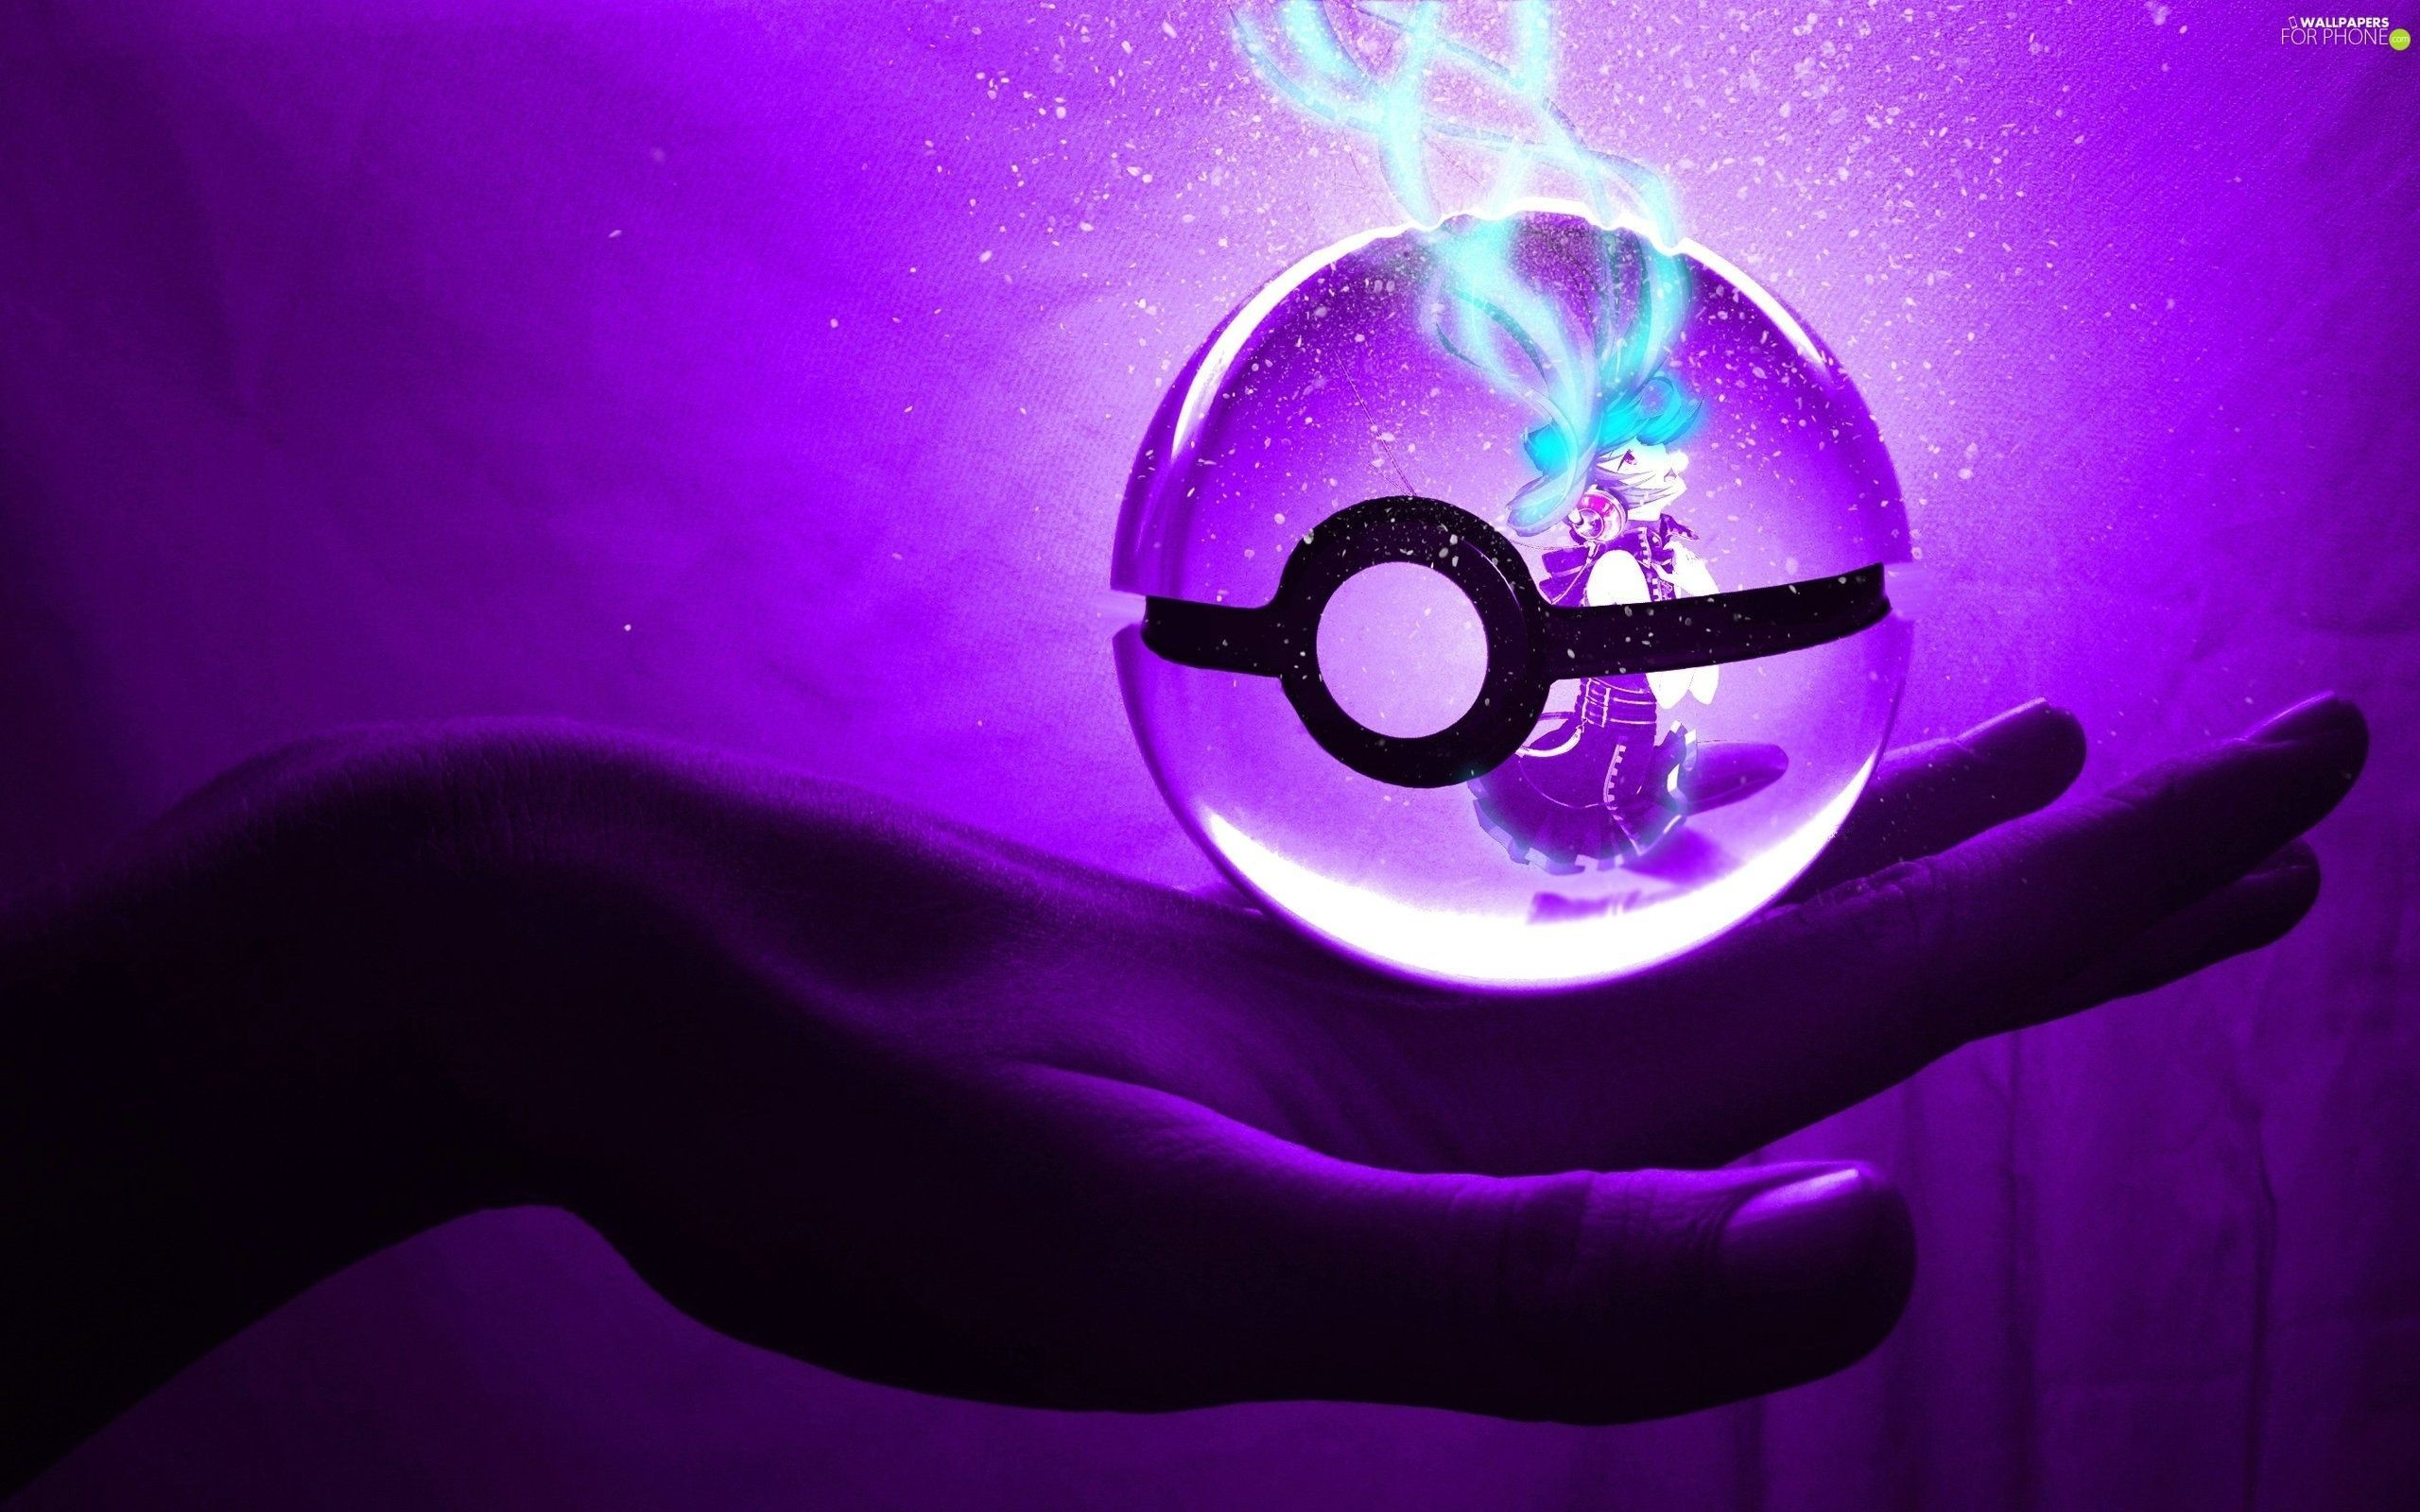 Res: 2560x1600, 3D, purple, Orb, Pokemon - For phone wallpapers: